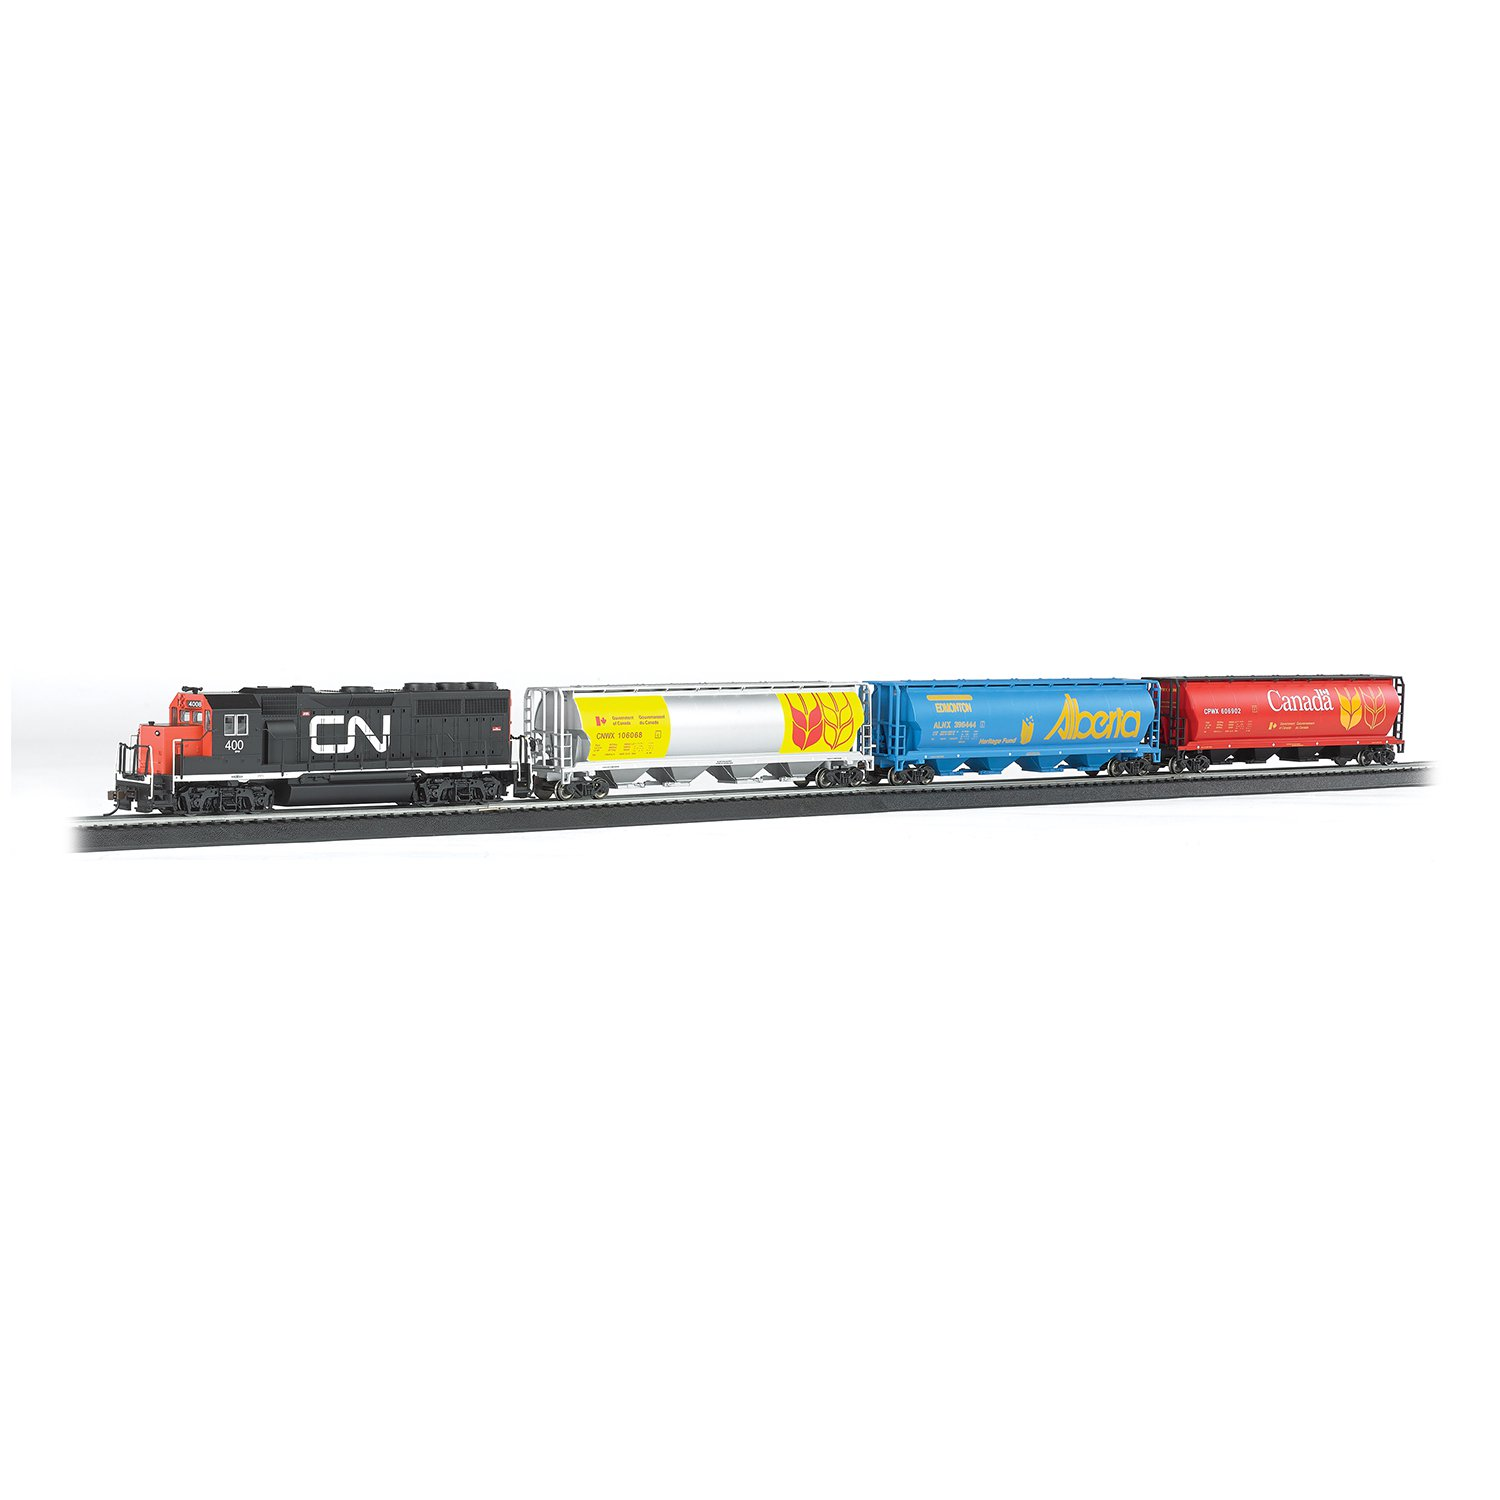 Bachmann Trains Canadian Harvest Express Electric Train Set, HO Scale | 735-BT by Bachmann Trains